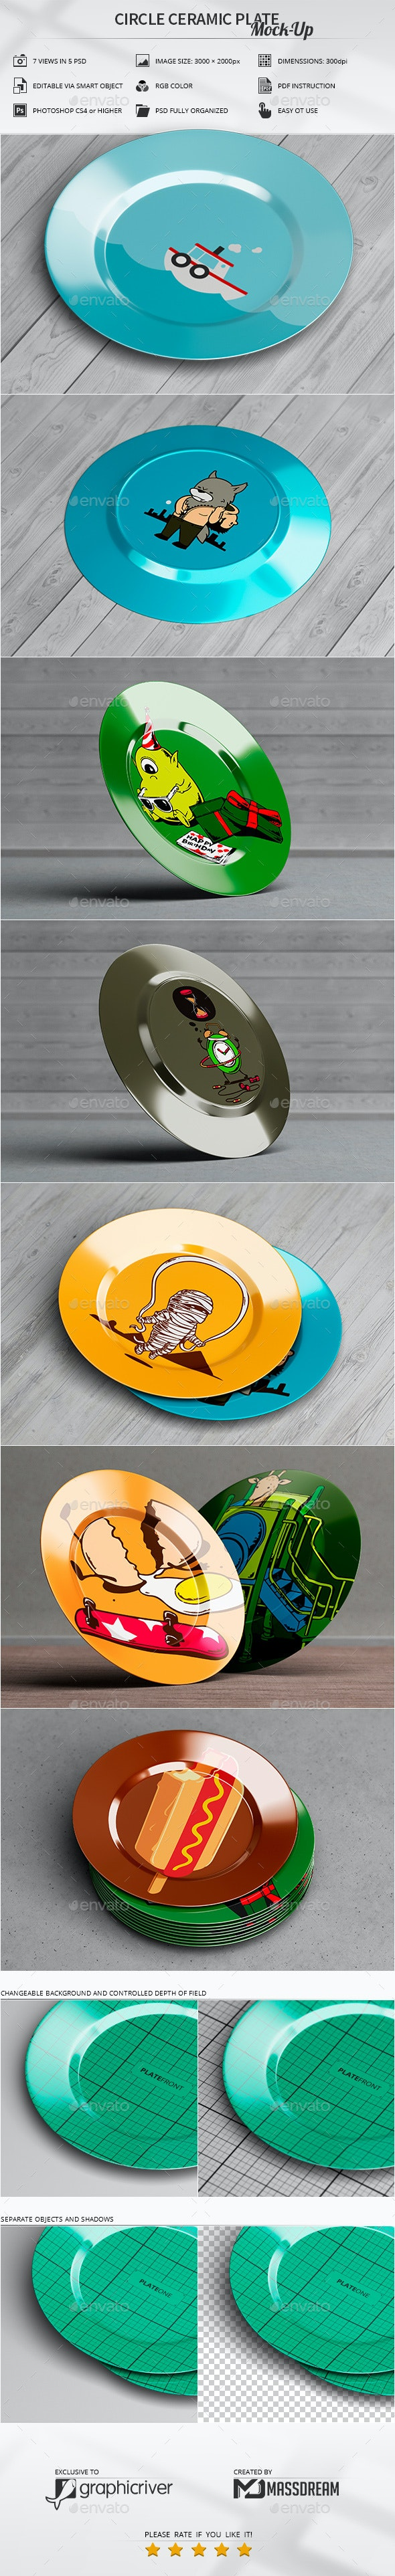 Circle Ceramic Plate Mock-Up - Miscellaneous Product Mock-Ups